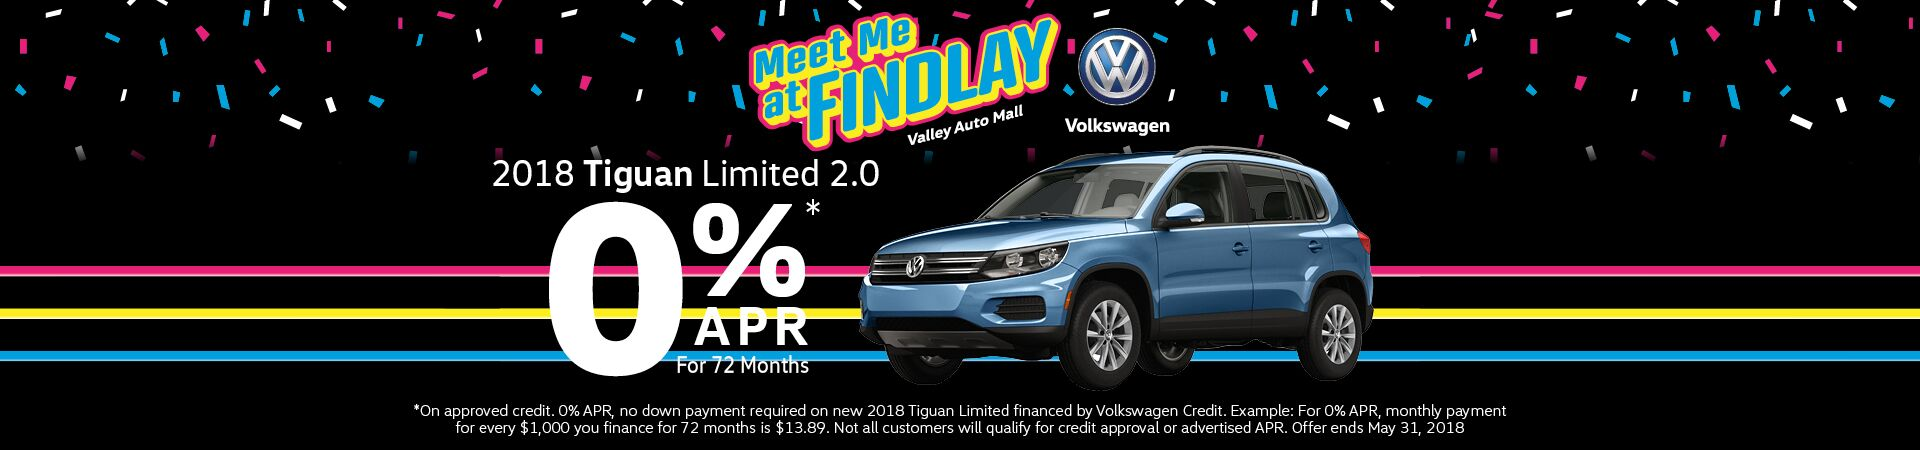 April Tiguan Limited